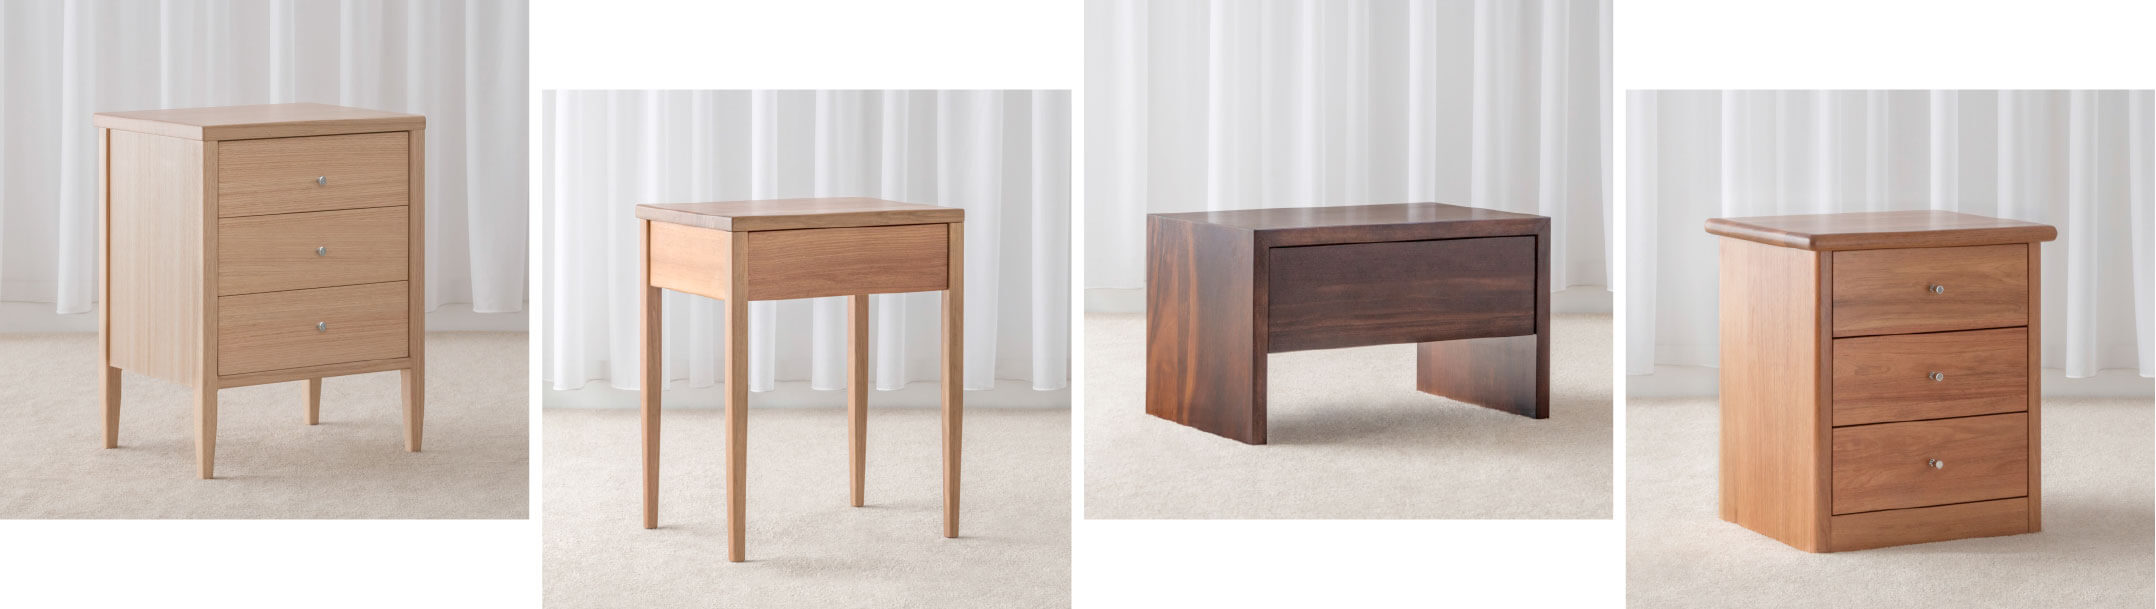 wooden bedside tables made in Adelaide